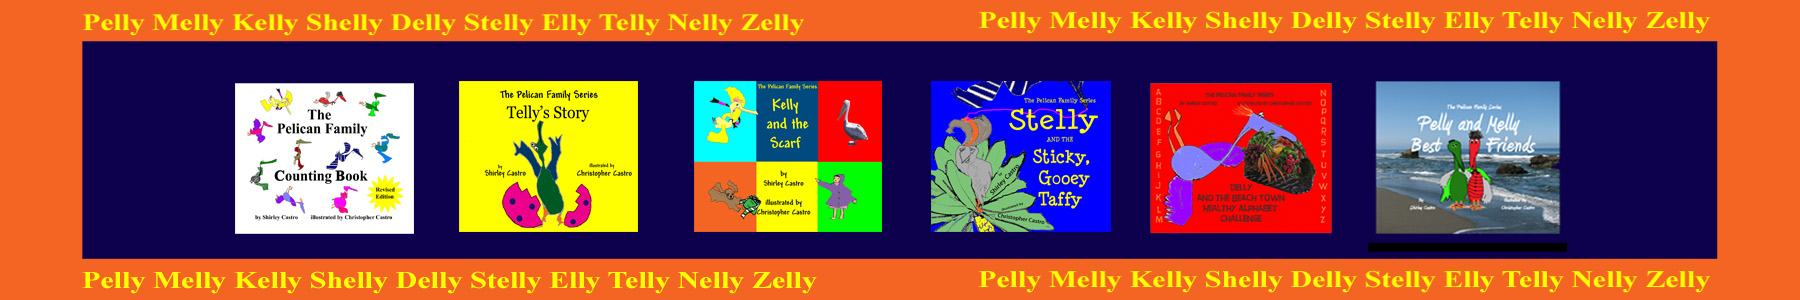 Pelican Family Series Childrens Picture Books - All Six Books